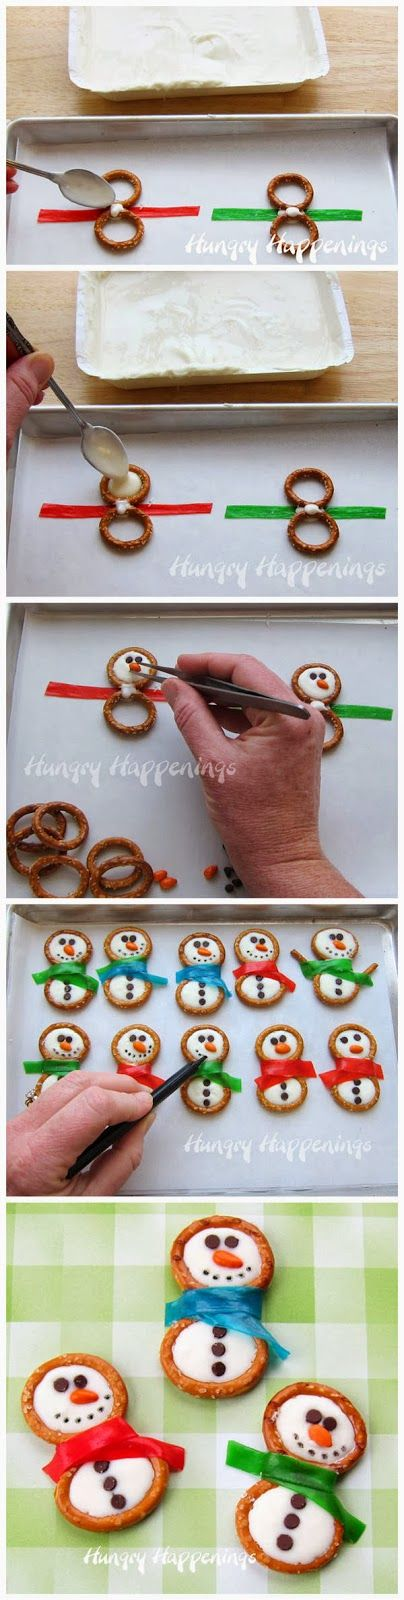 Frosty Snowman Pretzels. How cute! Should make these for our work holiday party